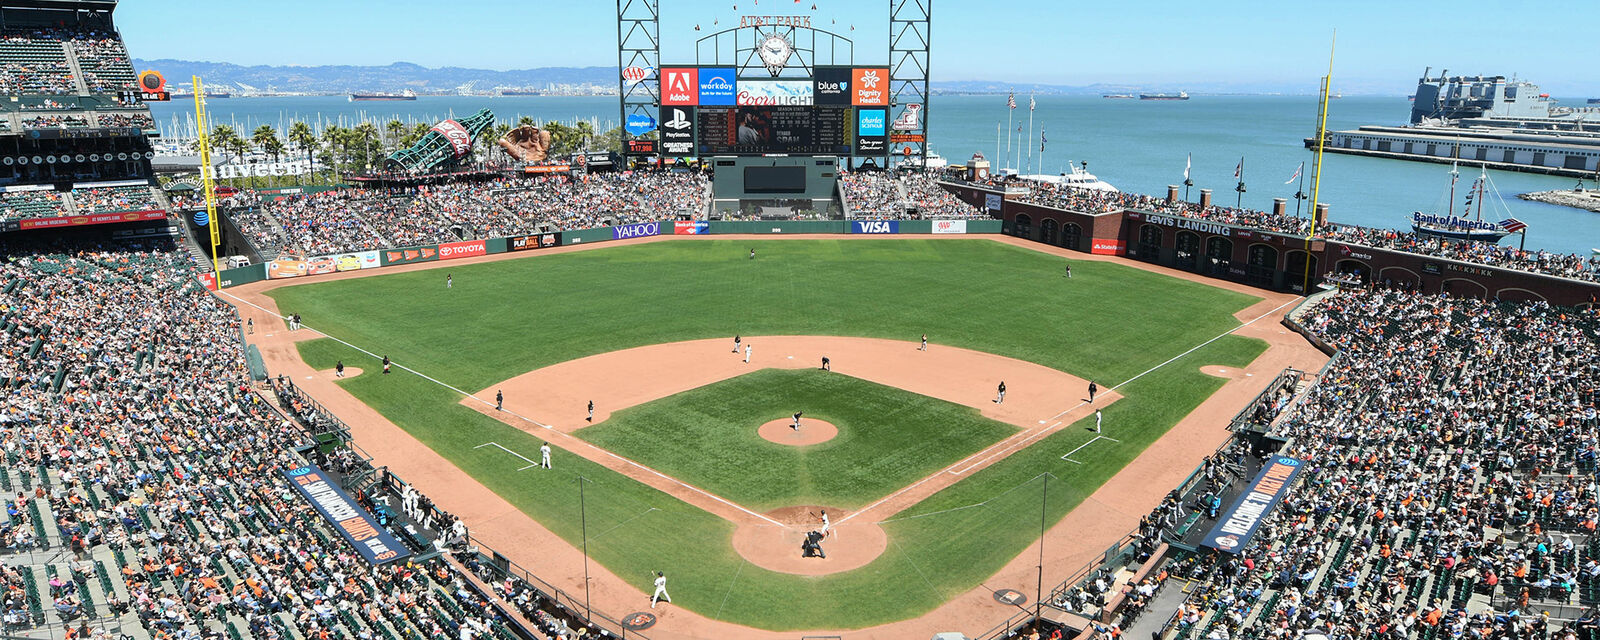 Philadelphia Phillies at San Francisco Giants Tickets (Fanny Pack)